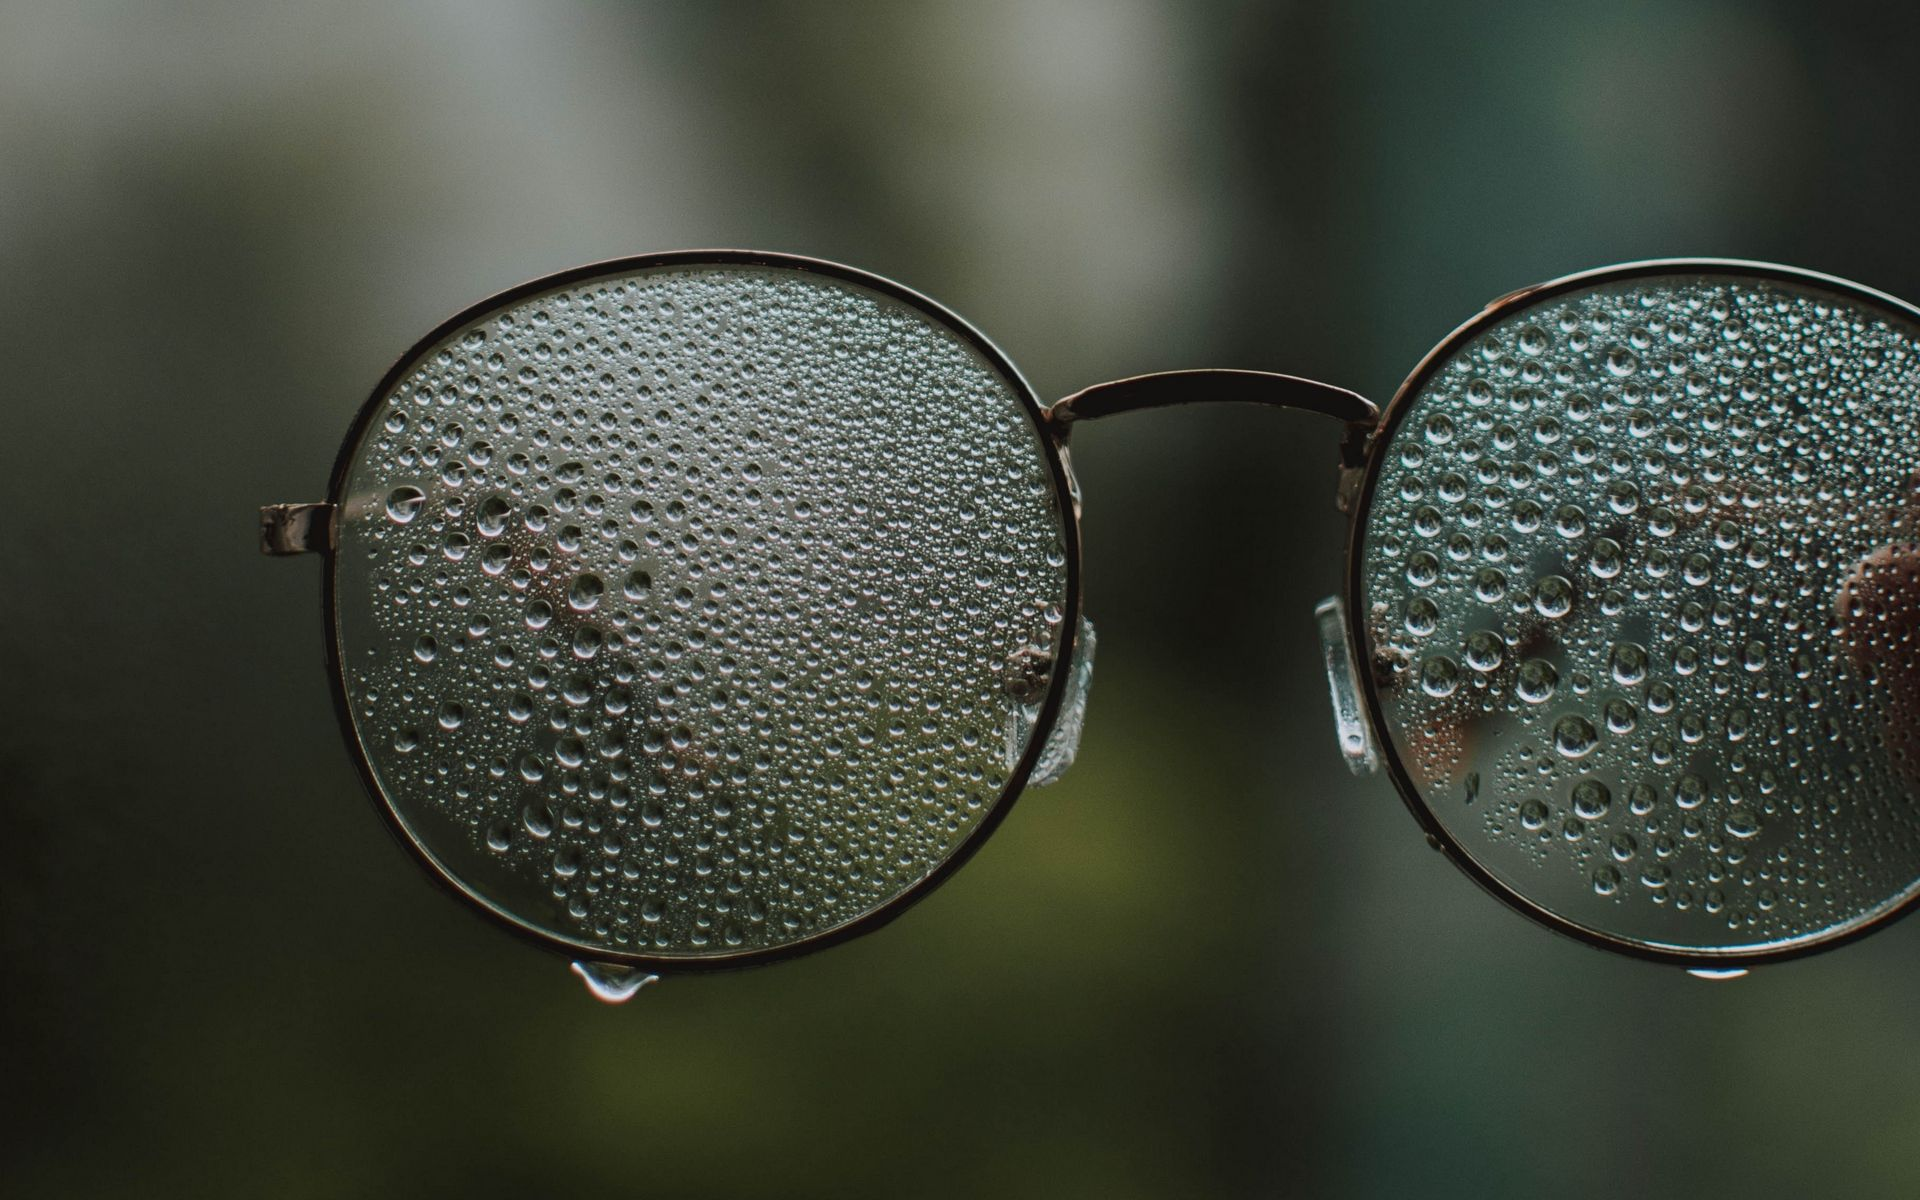 New Goggles For Men S Hd Wallpaper In 2019 New Goggles Hd